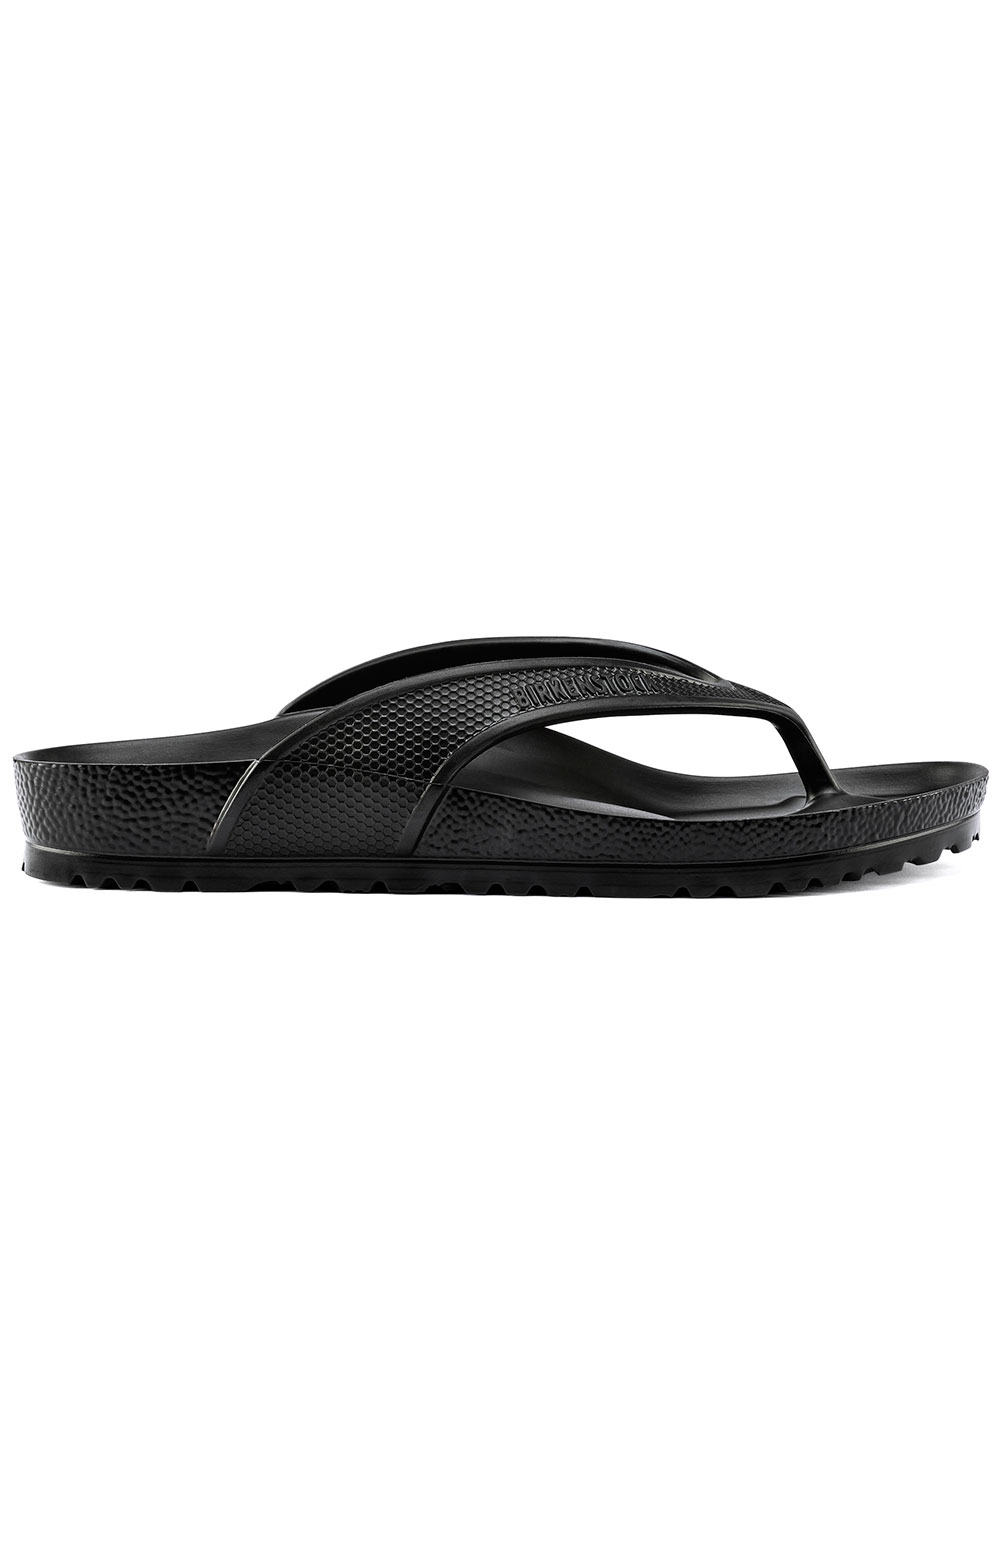 (1015487) Honolulu EVA Sandals - Black 3